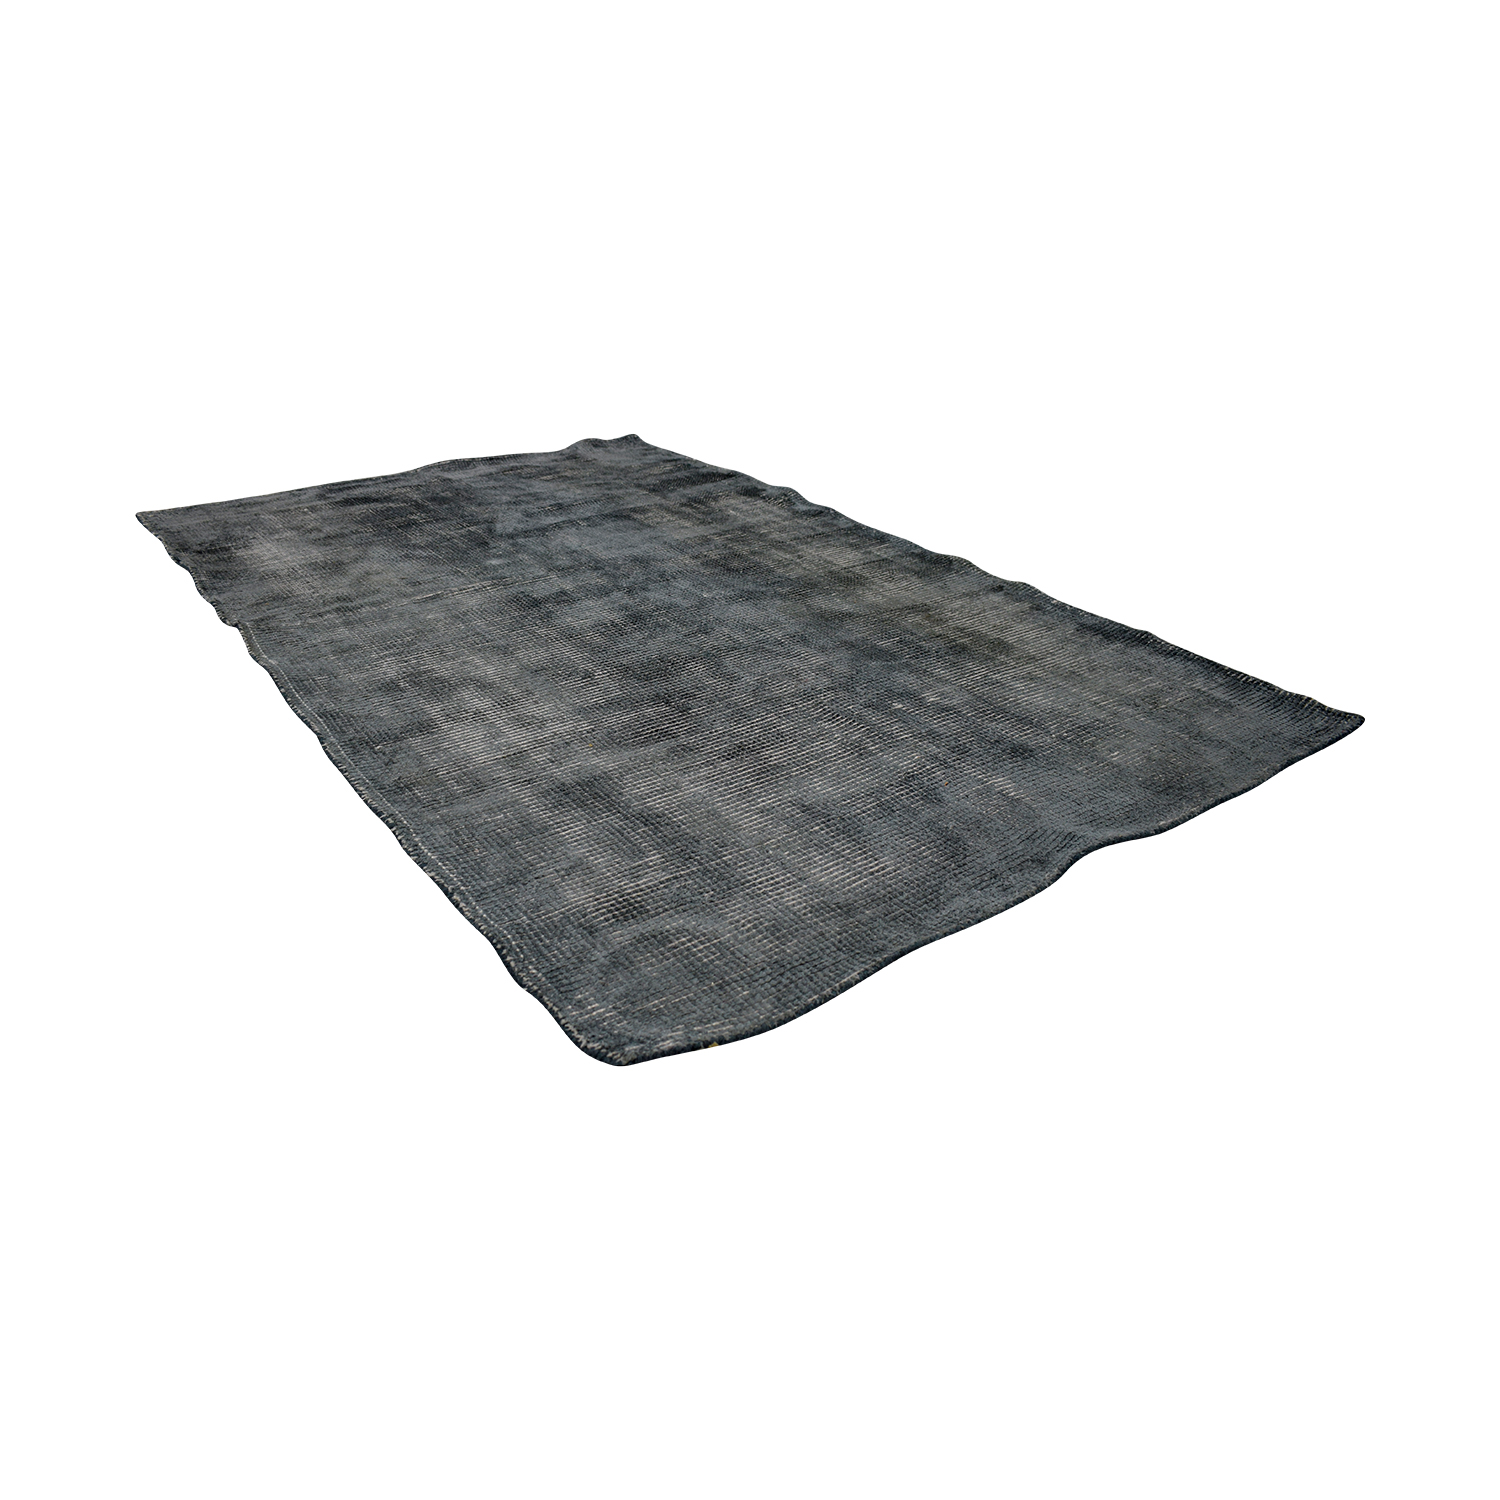 CB2 CB2 New Zealand Wool Scatter Grey Rug nyc